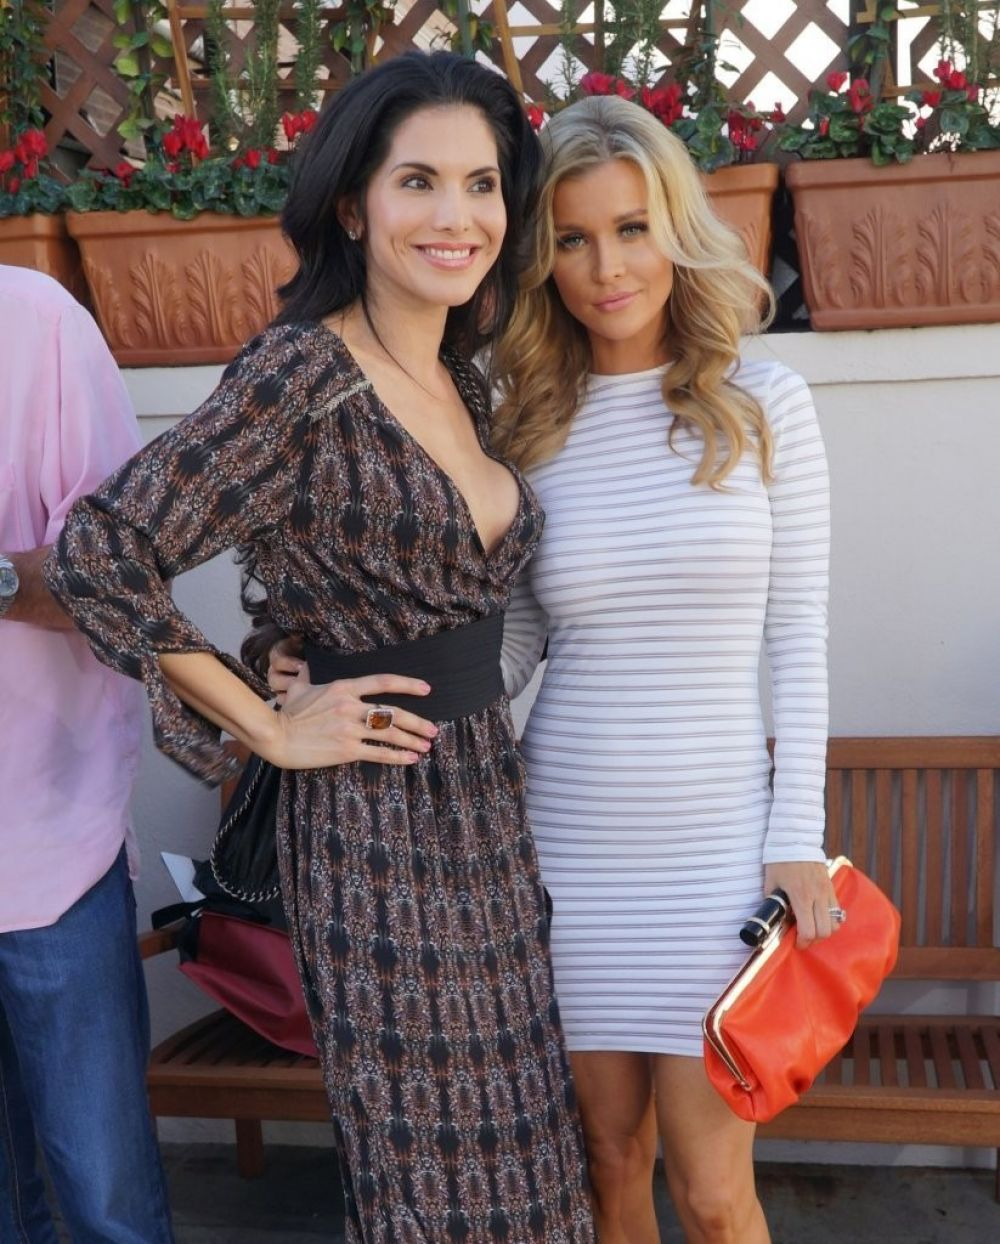 JOANNA KRUPA and JOYCE GIRAUD at Il Pastaio in Beverly Hills